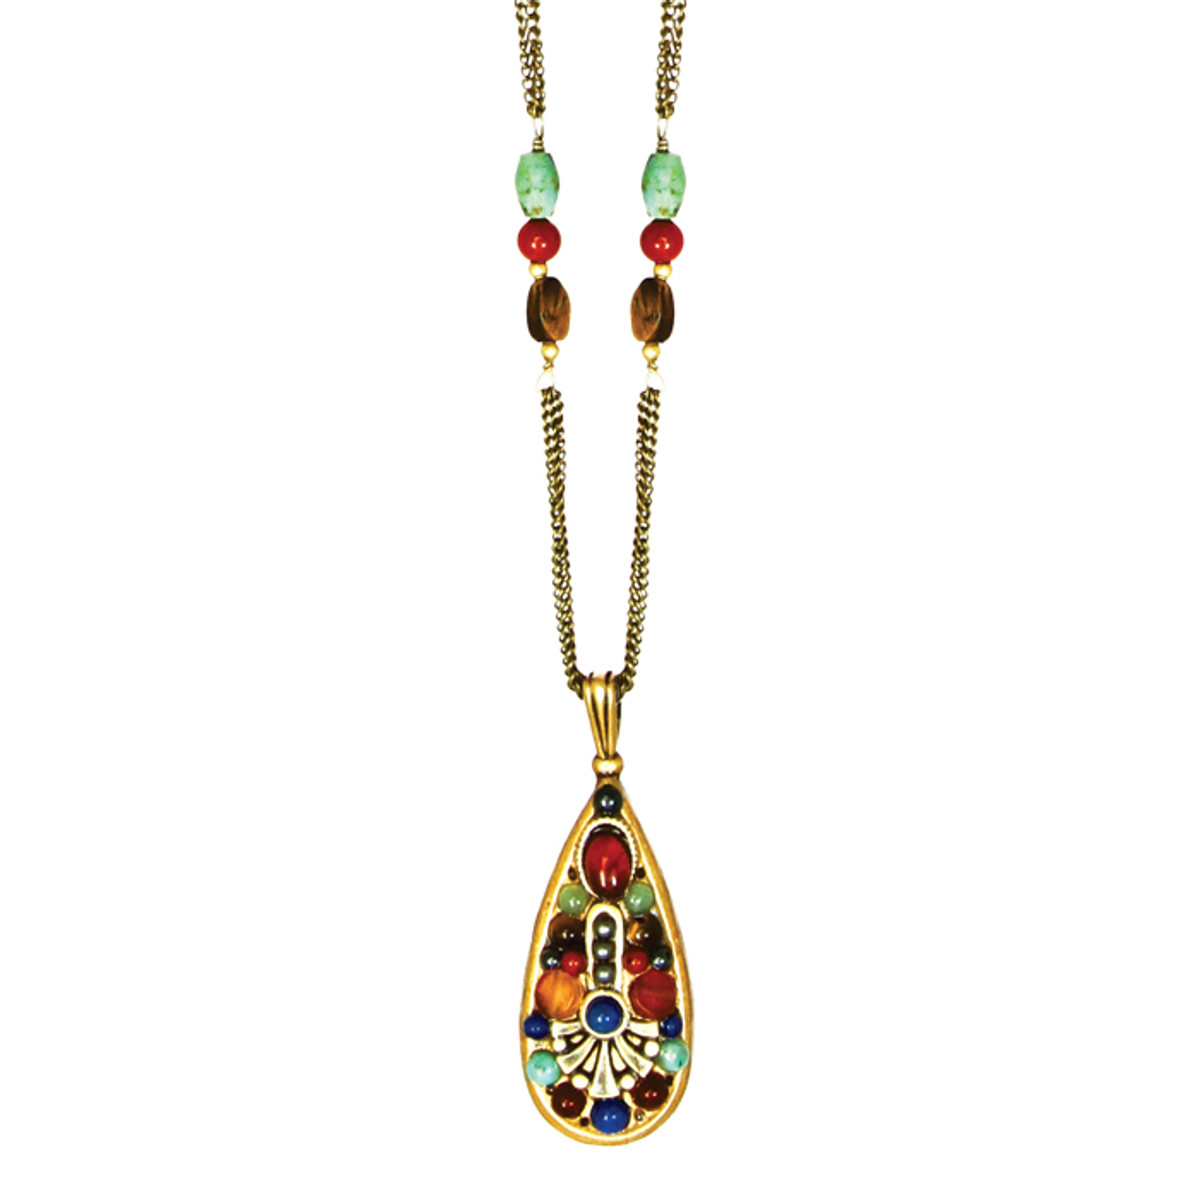 Michal Golan Necklace - Durango Teardrop Chain Bead